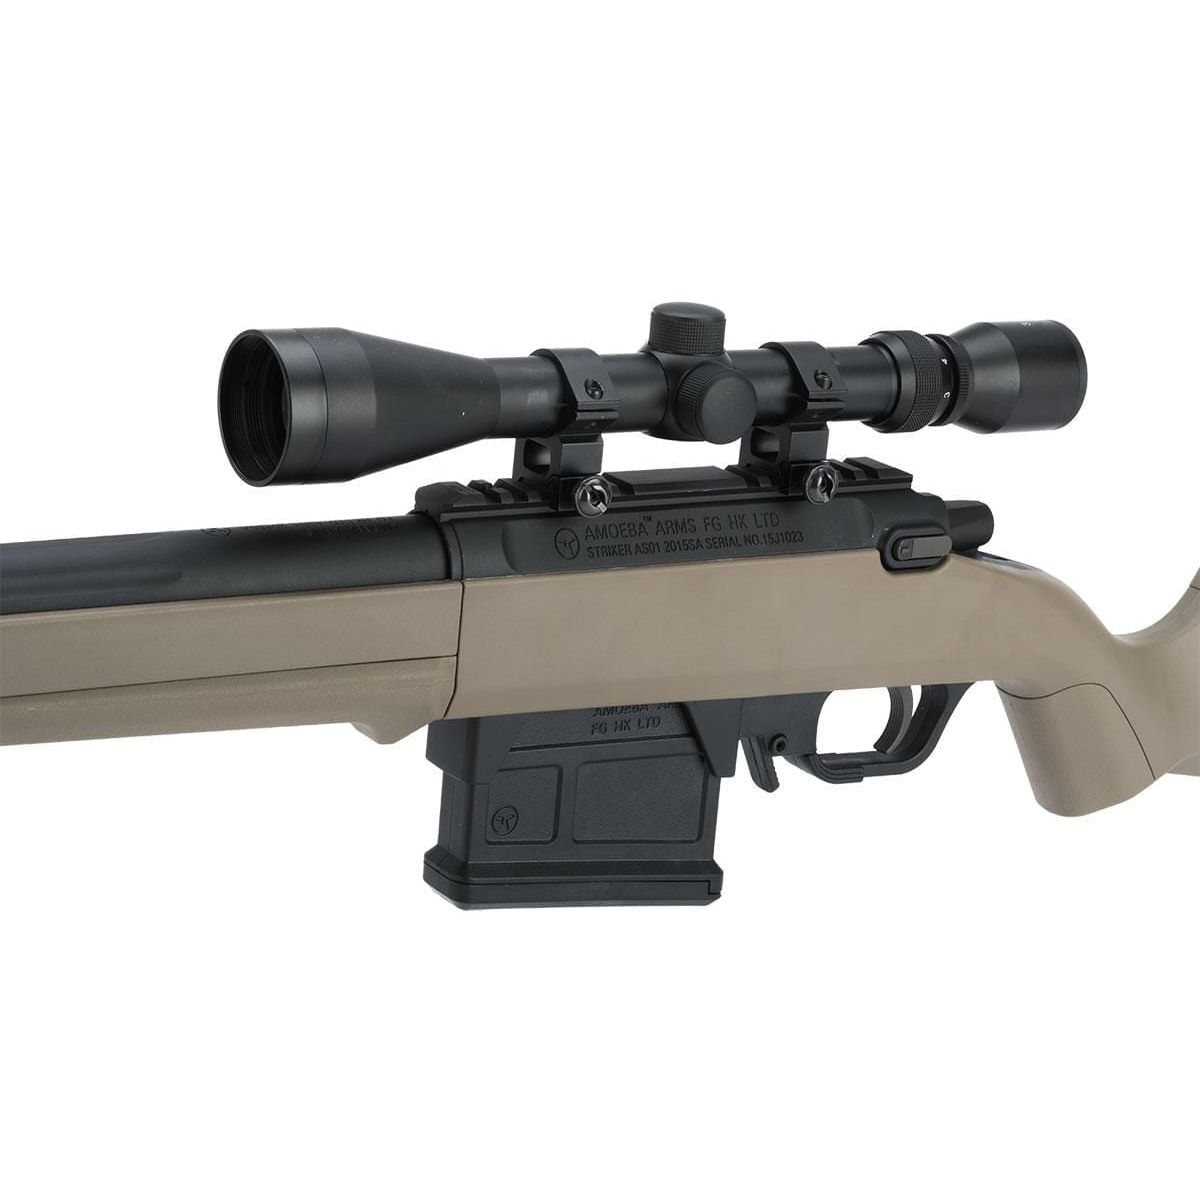 Gen2 S1 Bolt Action Sniper Rifle brown earth